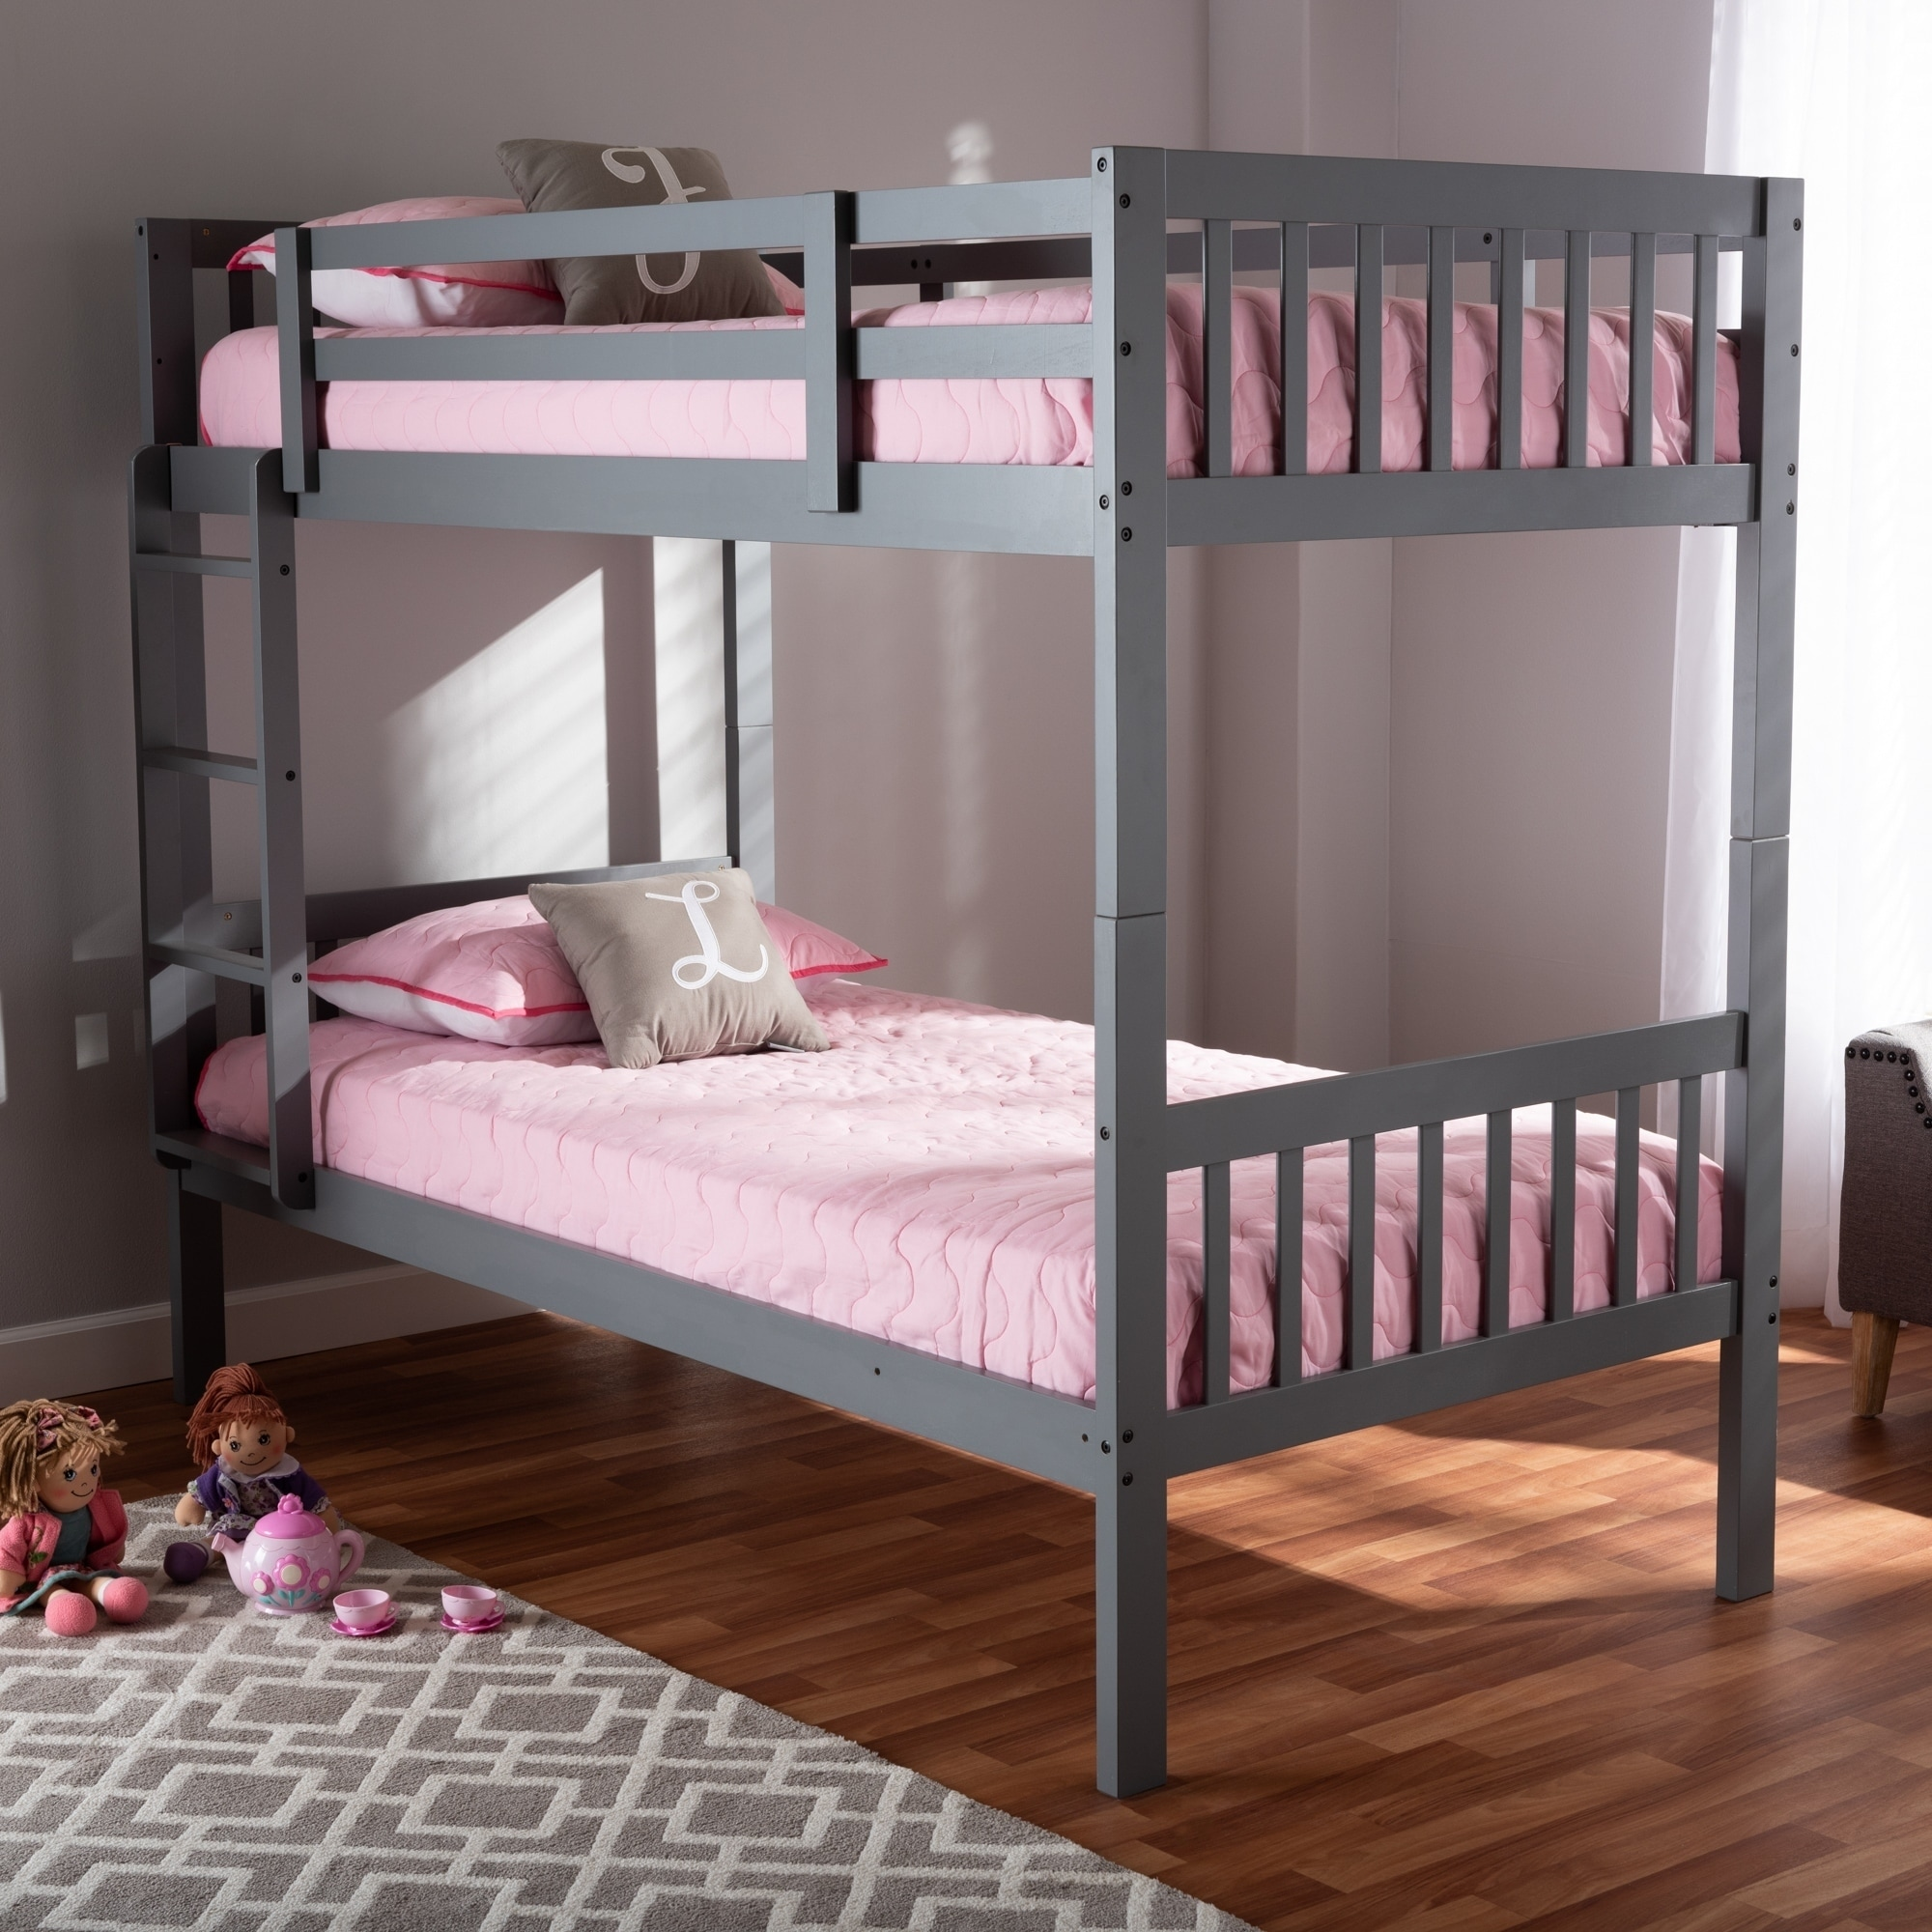 Modern And Contemporary Bunk Bed Overstock 28560706